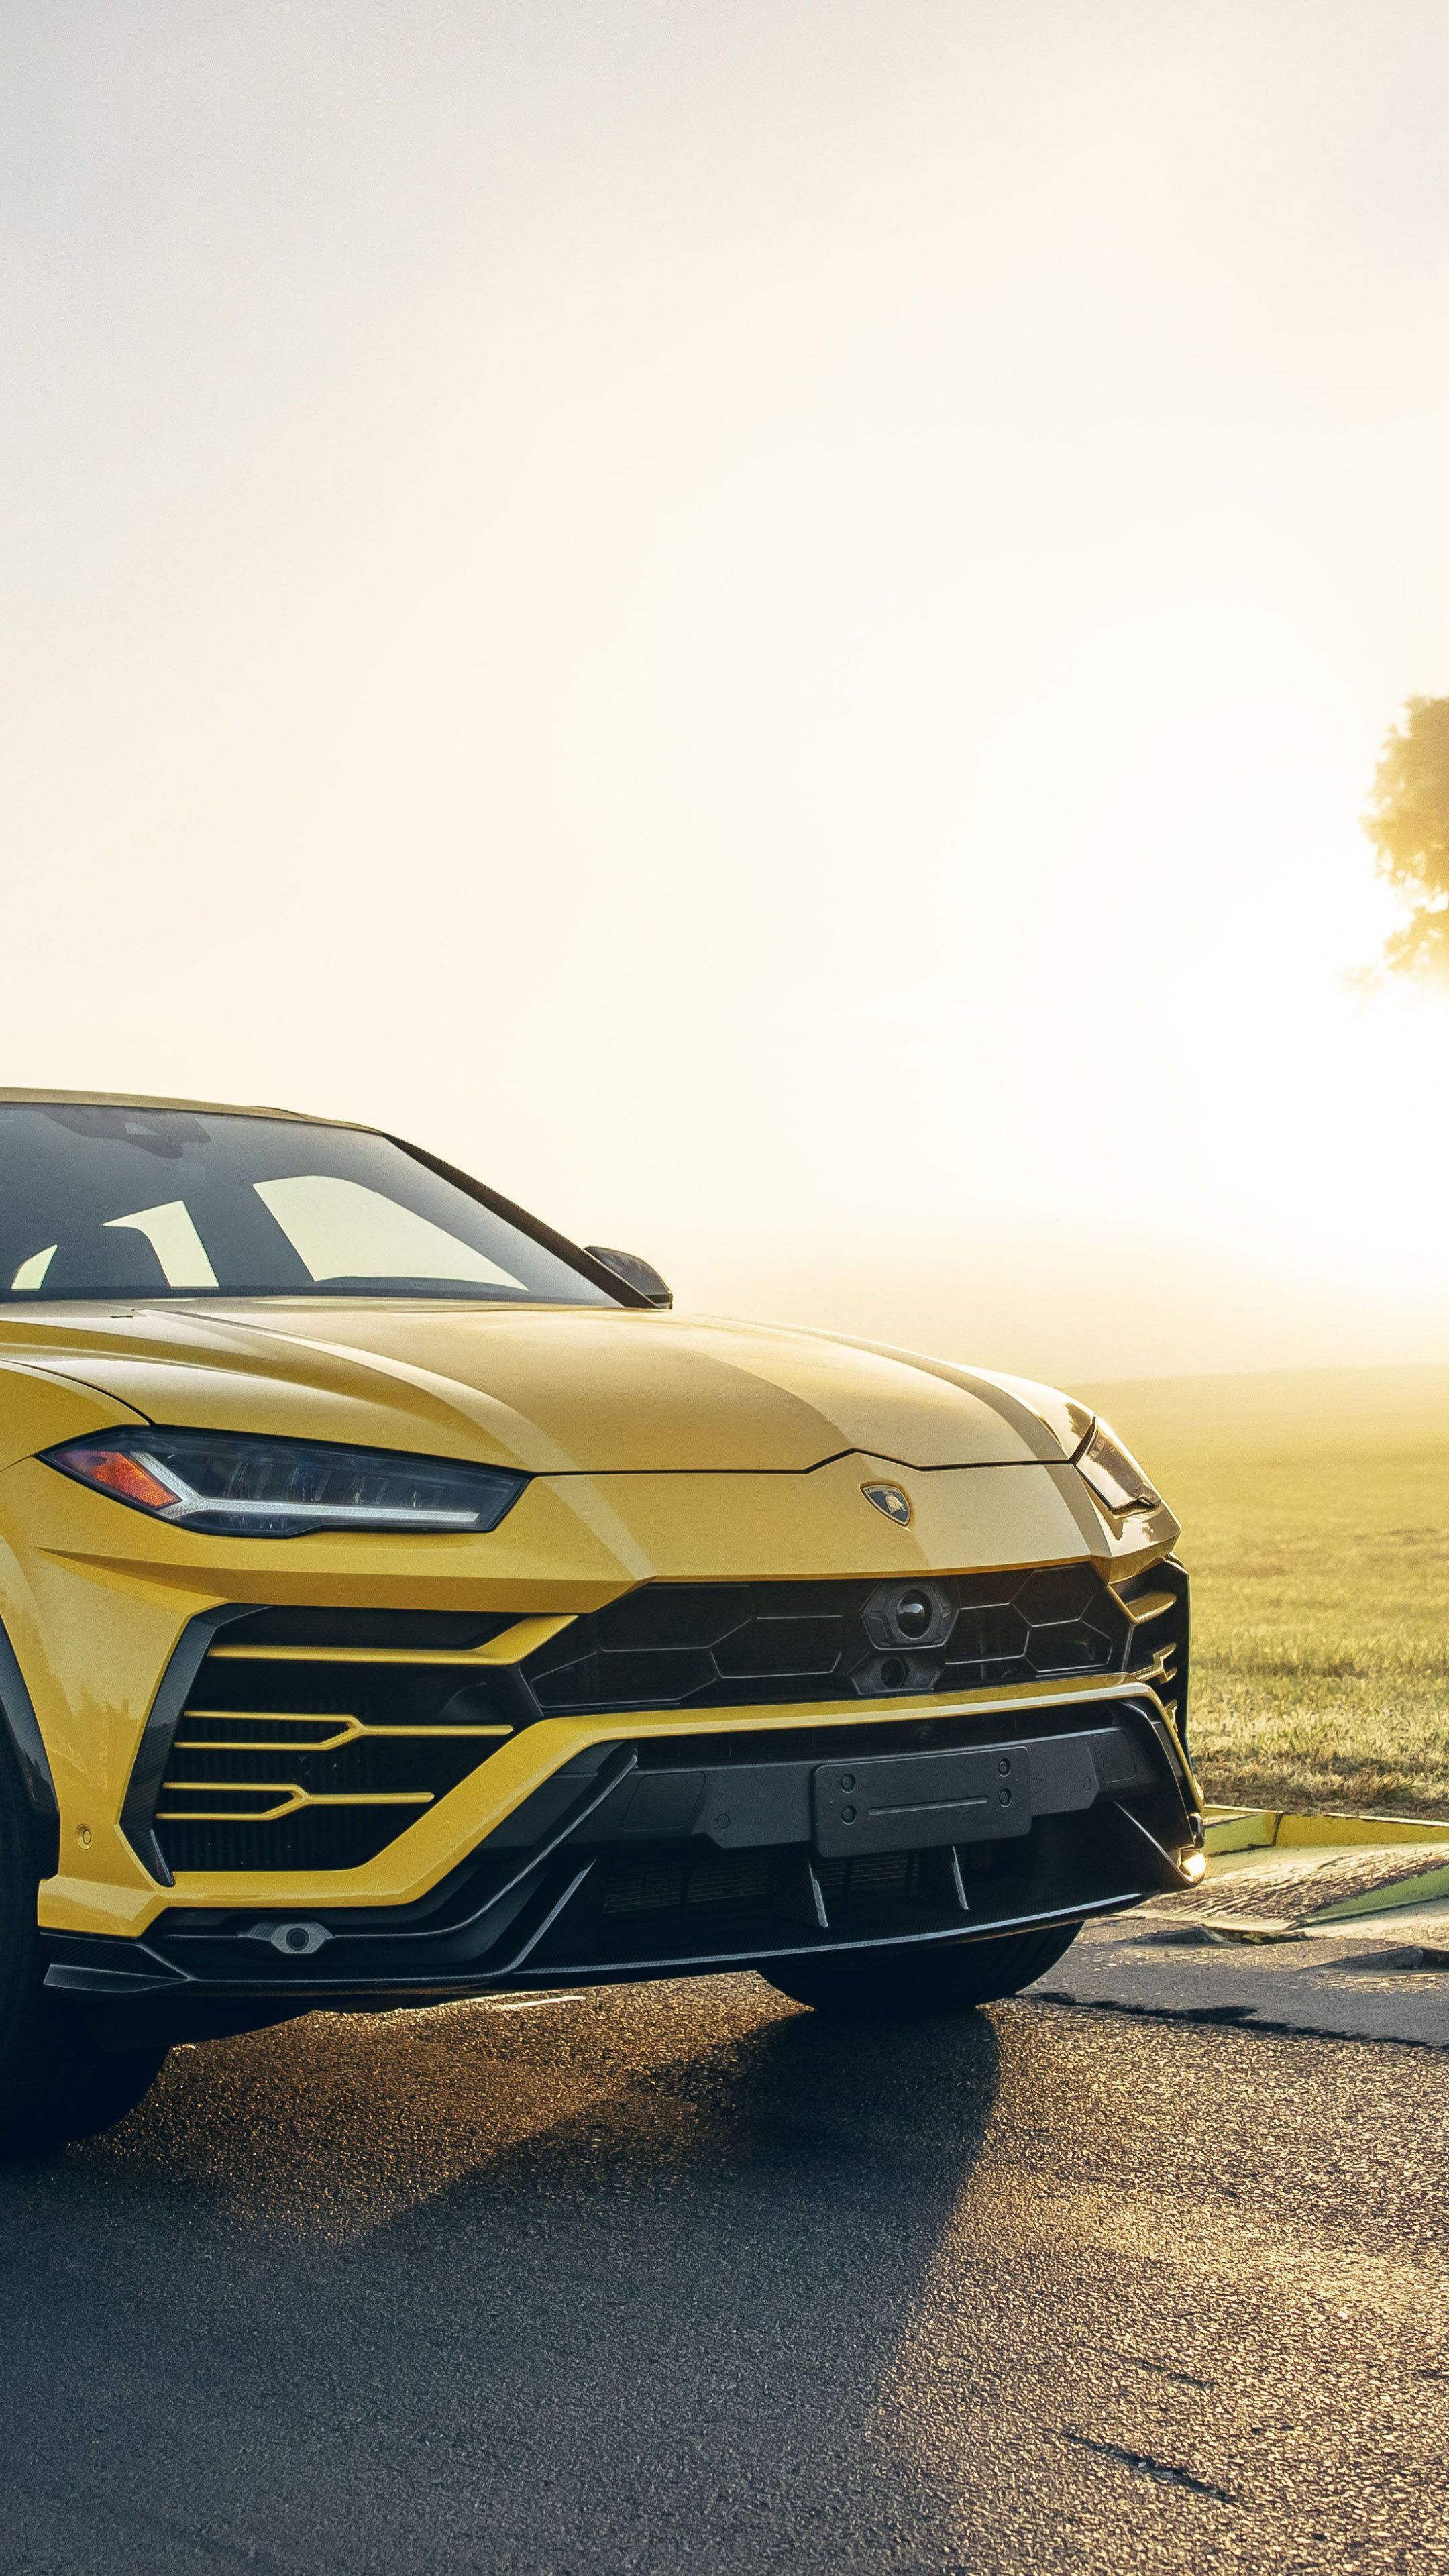 2160x3840 Car Yellow Lamborghini Urus Compact Car Wallpaper